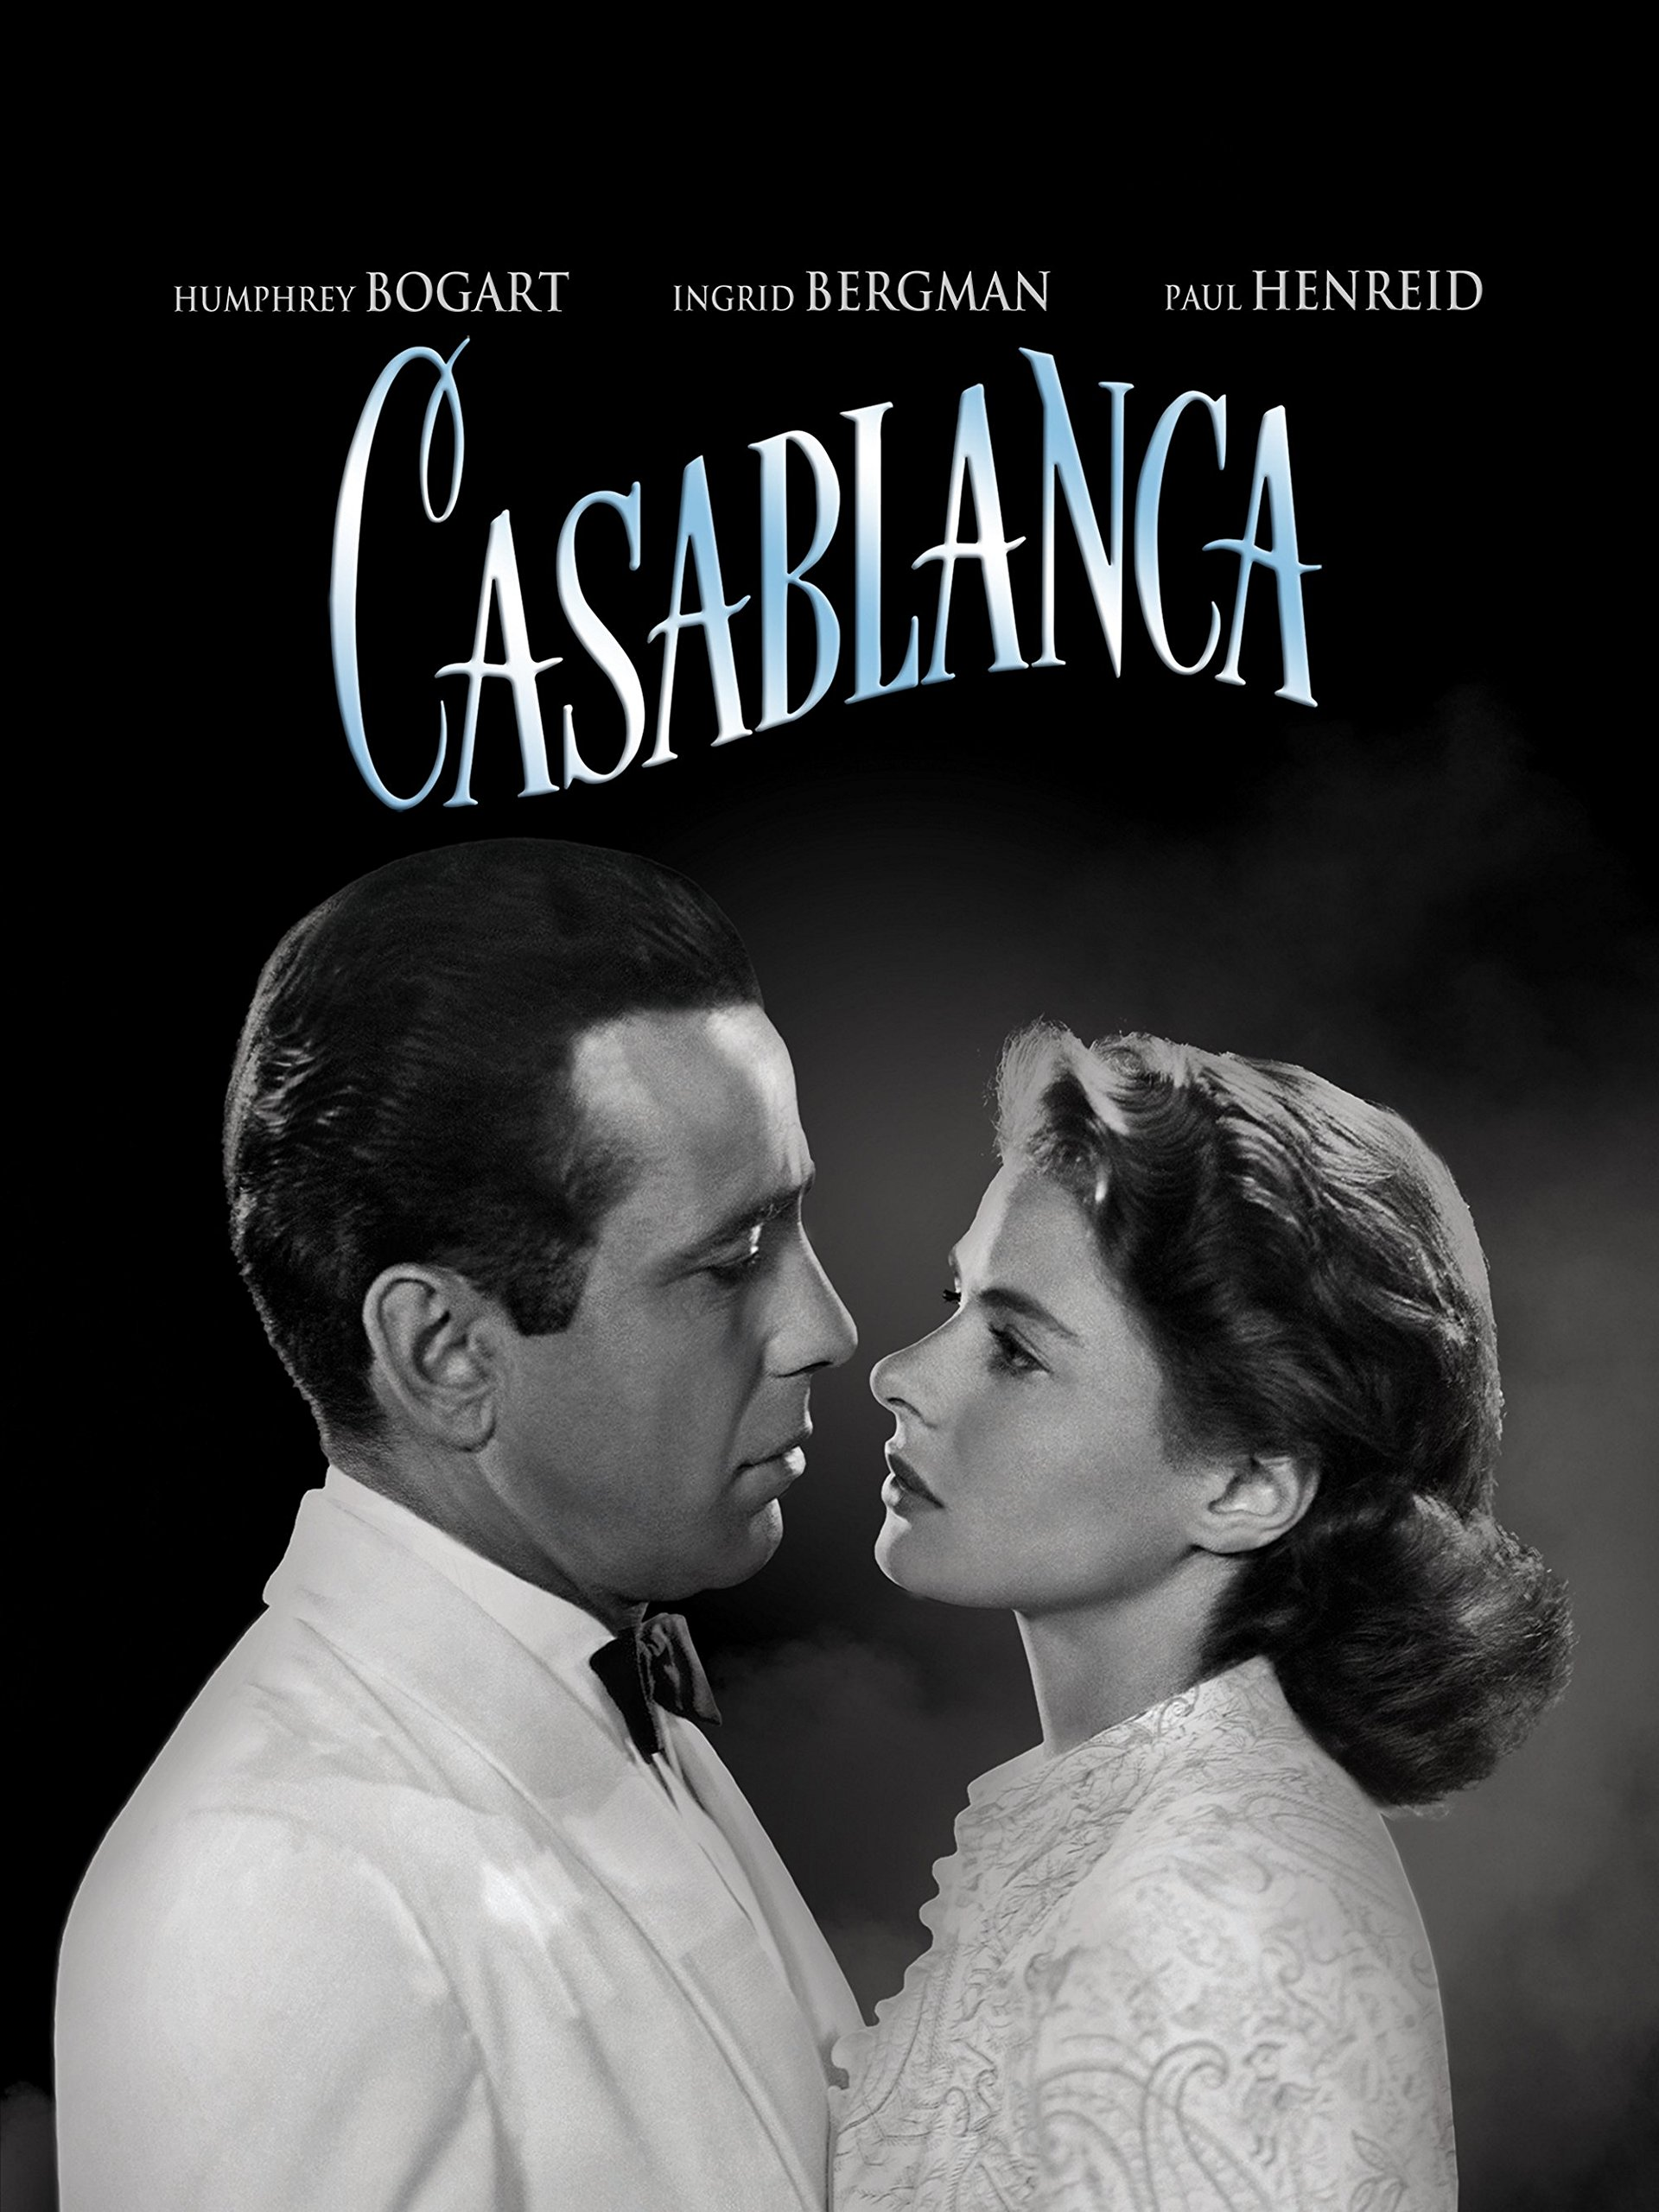 Poster Image of the movie Casablanca